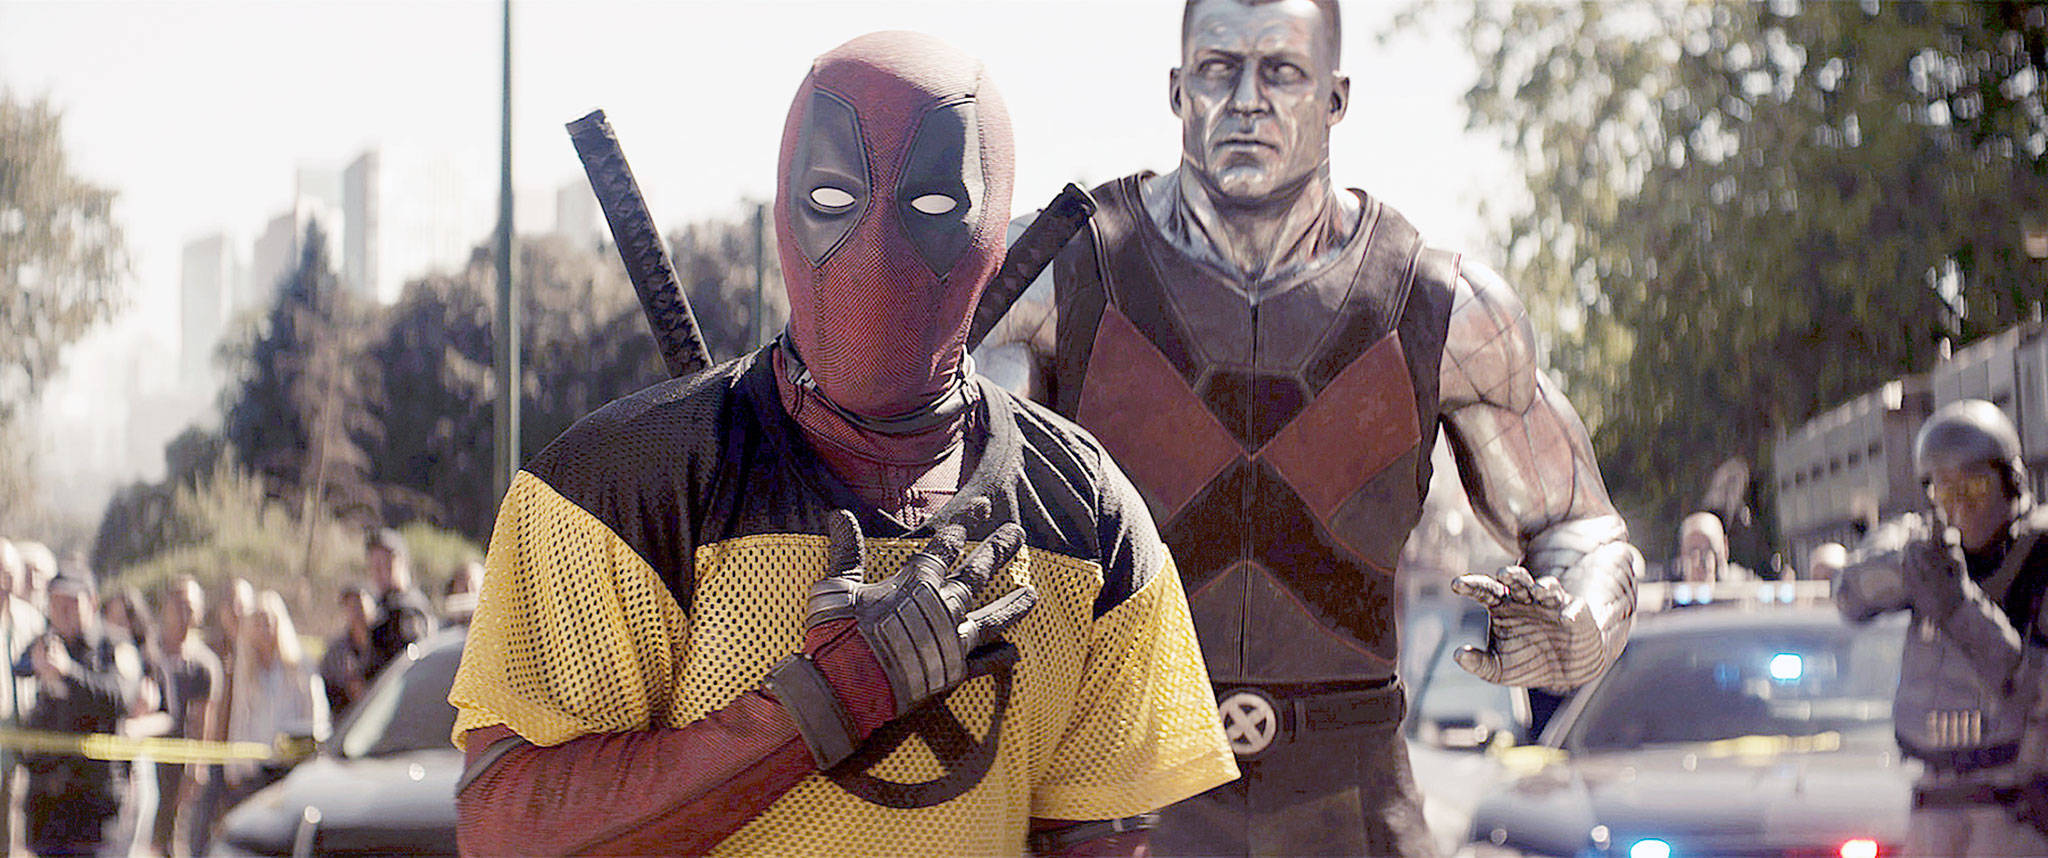 "The title character, Ryan Reynolds (left), and Colossus (voice of Stefan Kapicic) in the action-comedy sequel ""Deadpool 2."" (Twentieth Century Fox)"